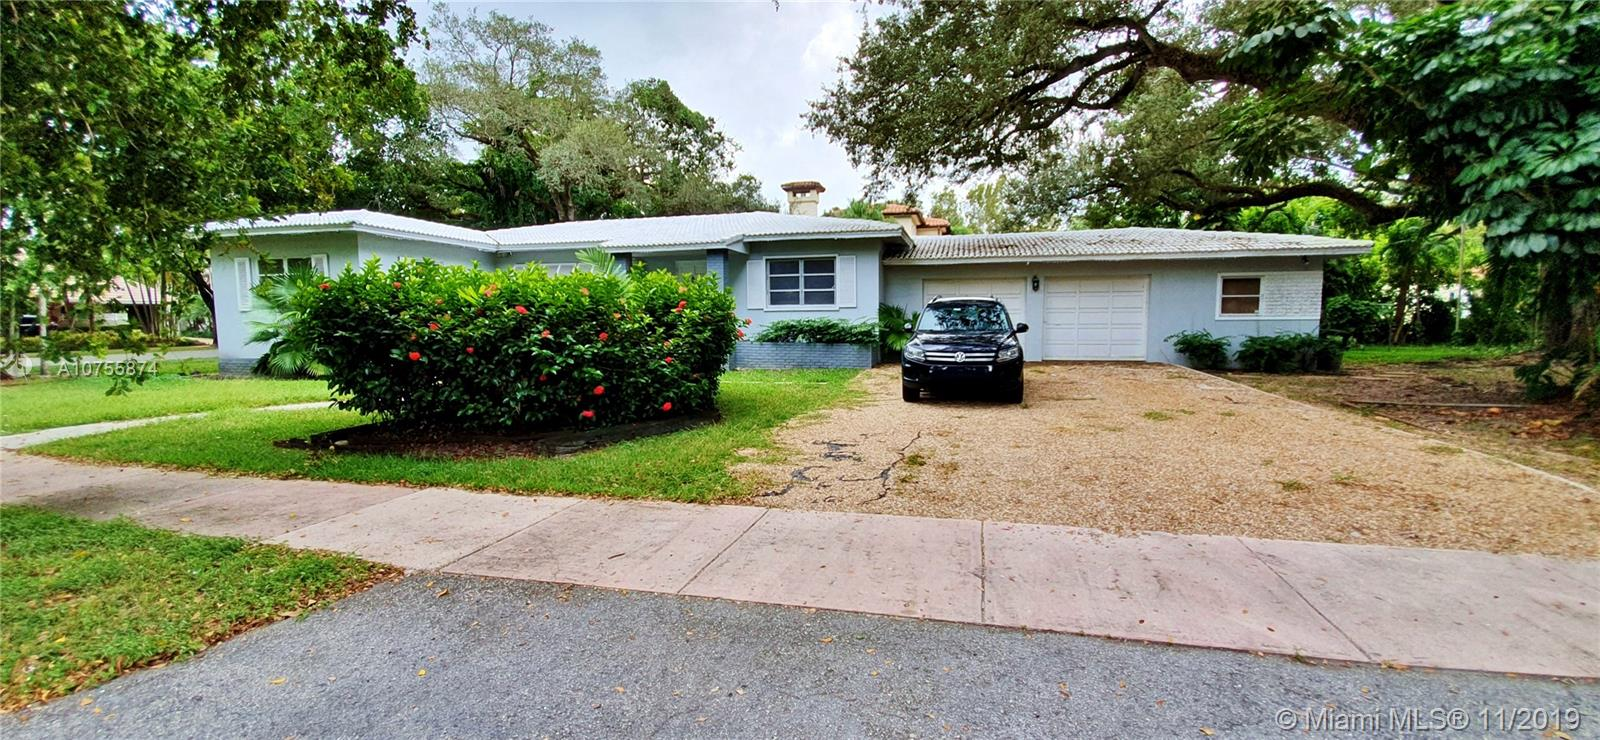 4900  Alhambra Cir  For Sale A10755874, FL